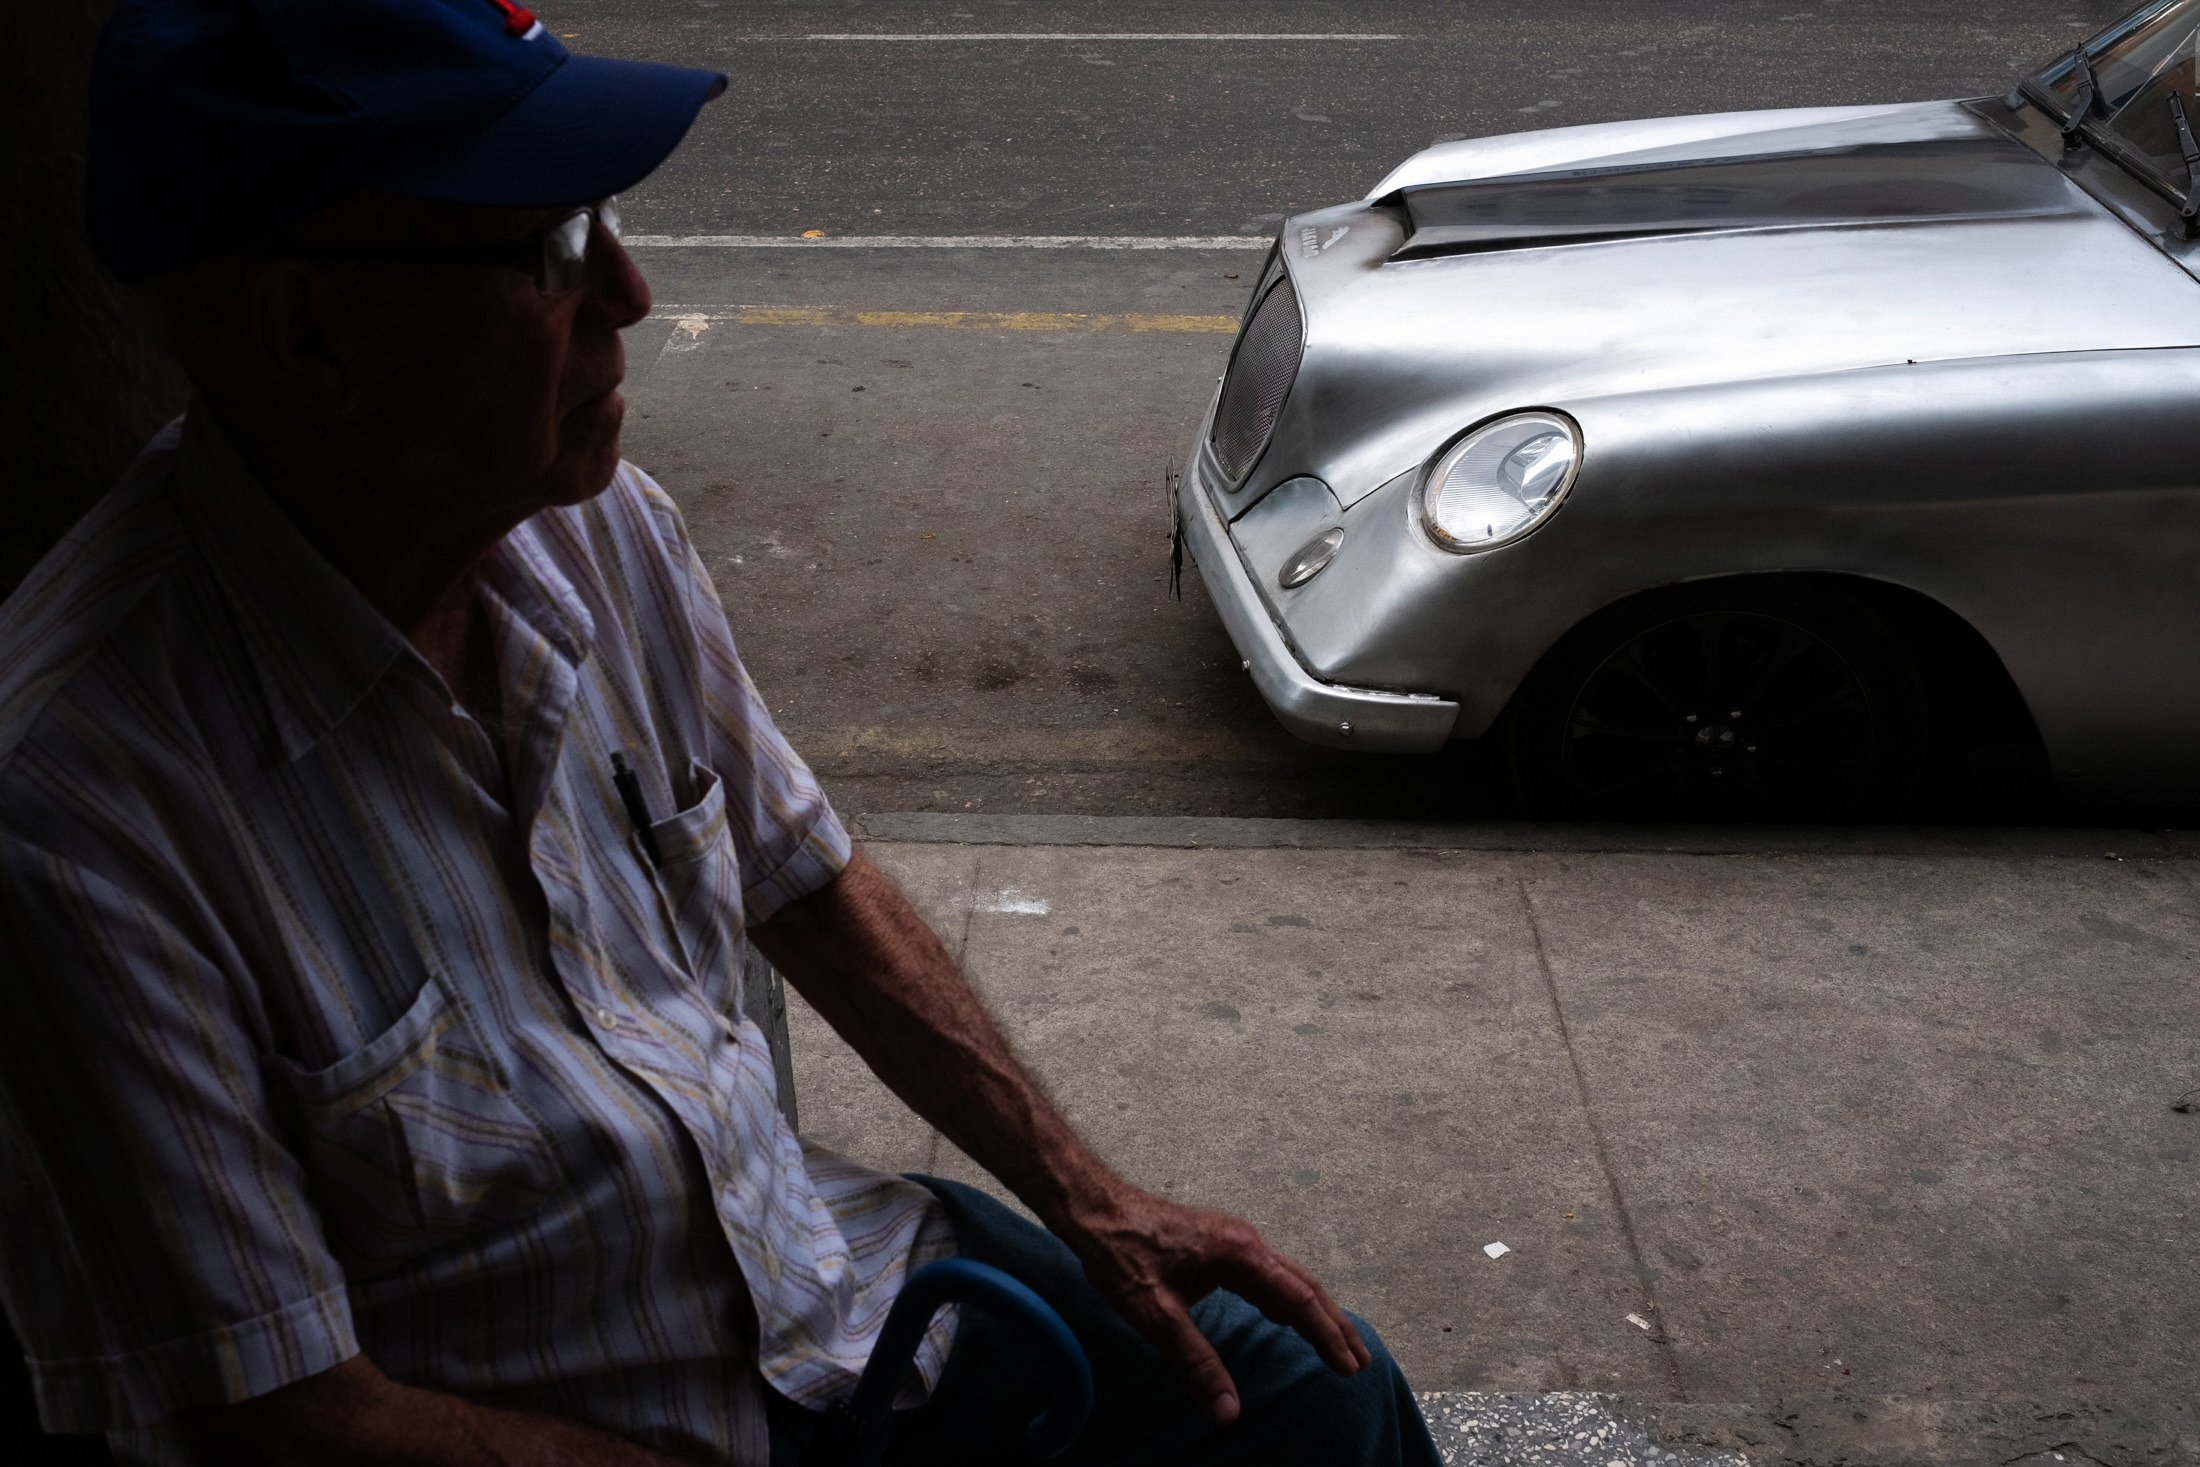 silver car with a side profile of a man